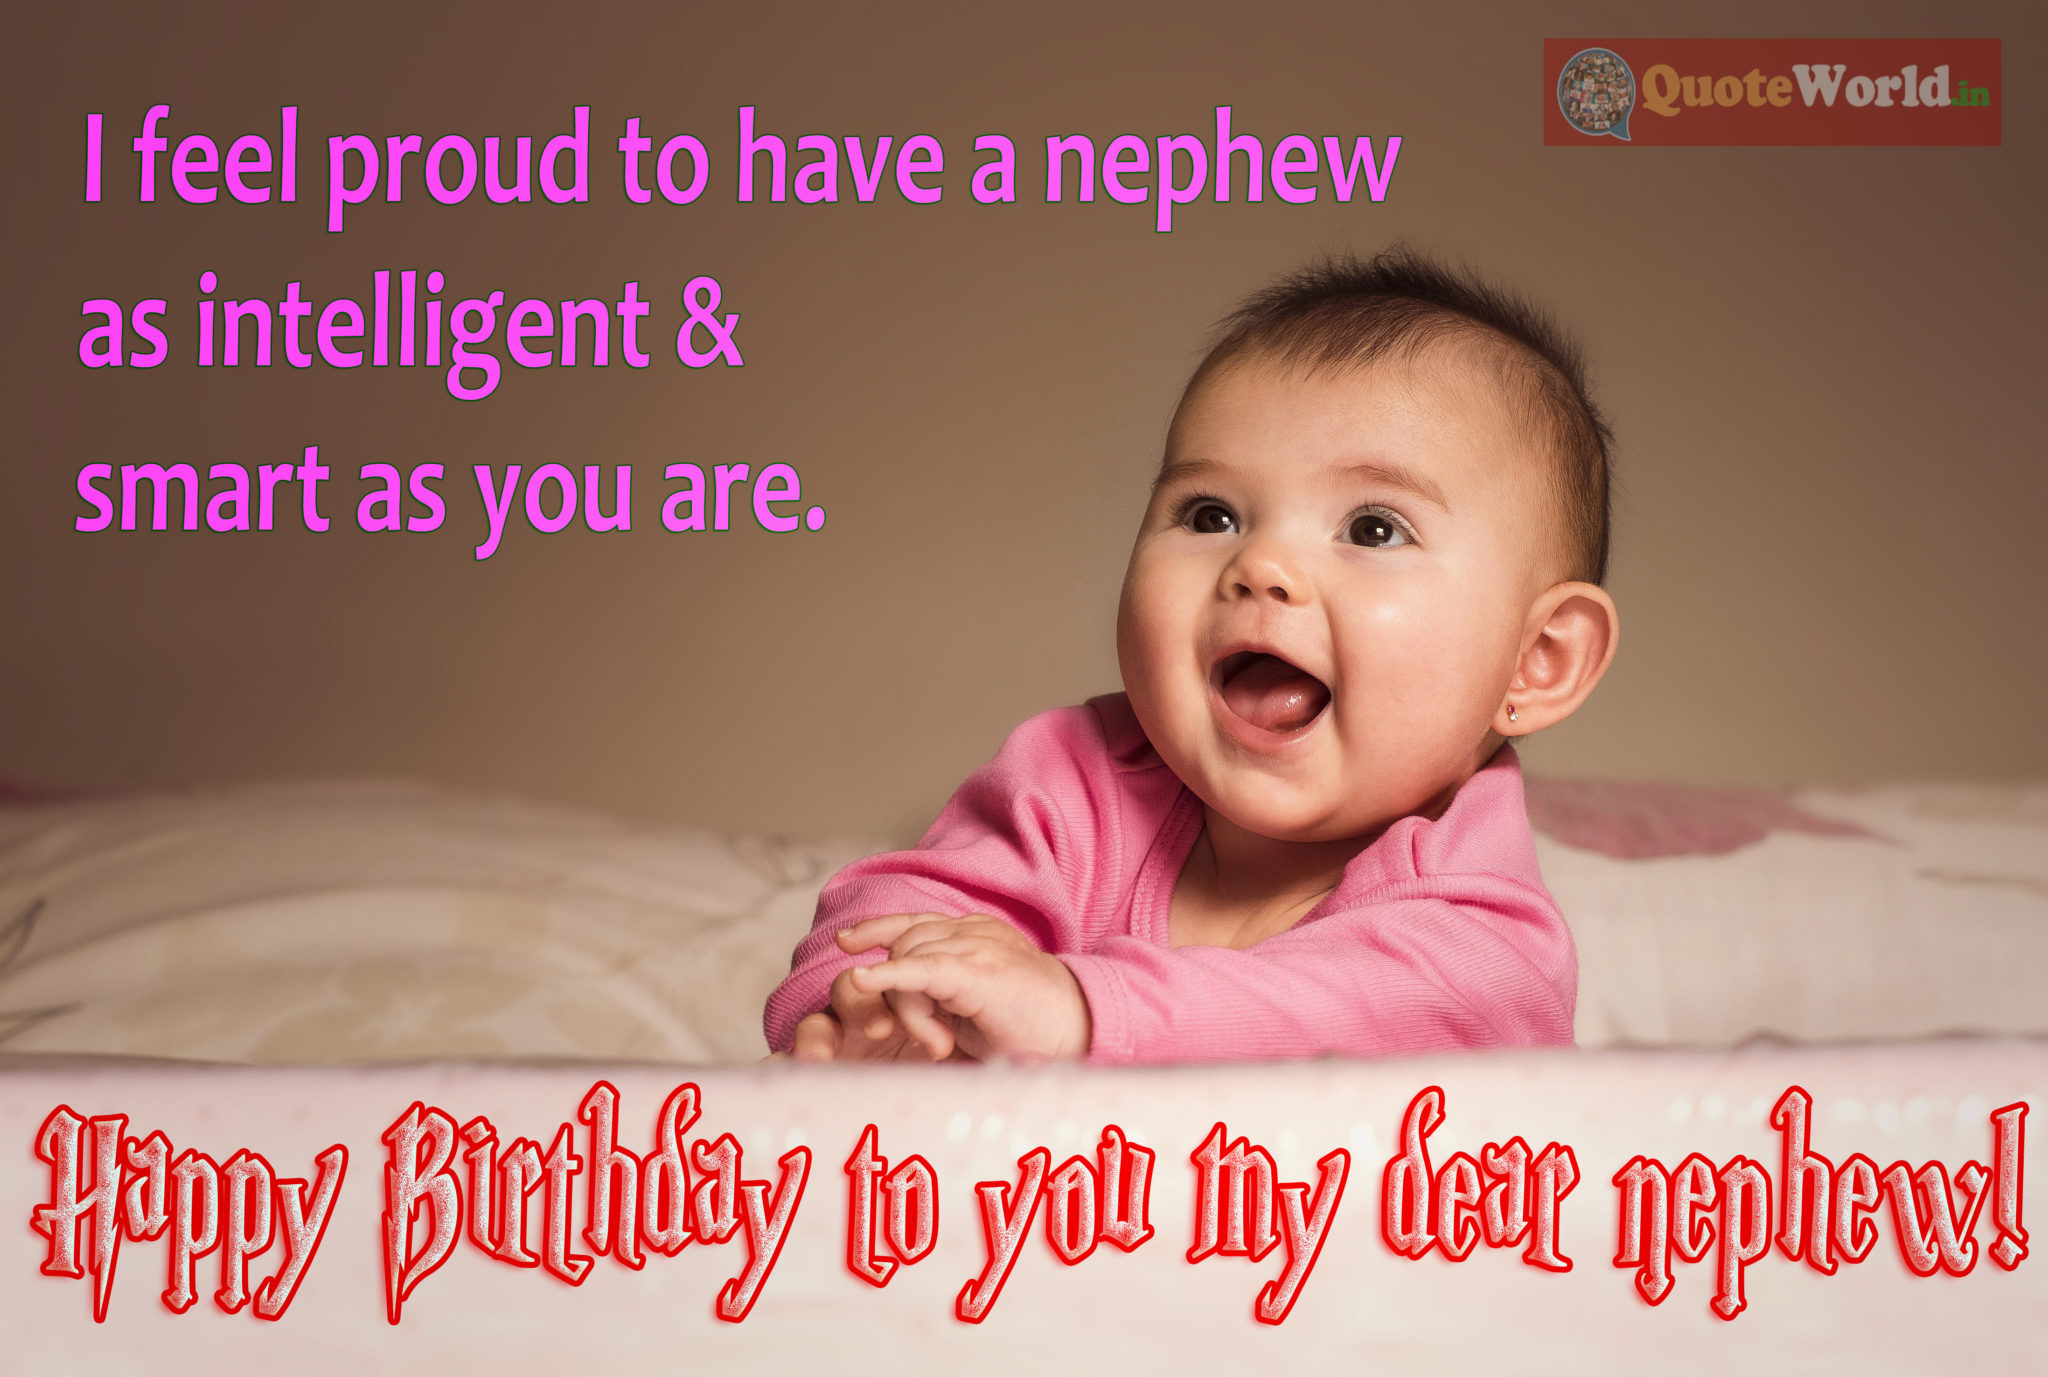 Images for birthday wishes for nephew